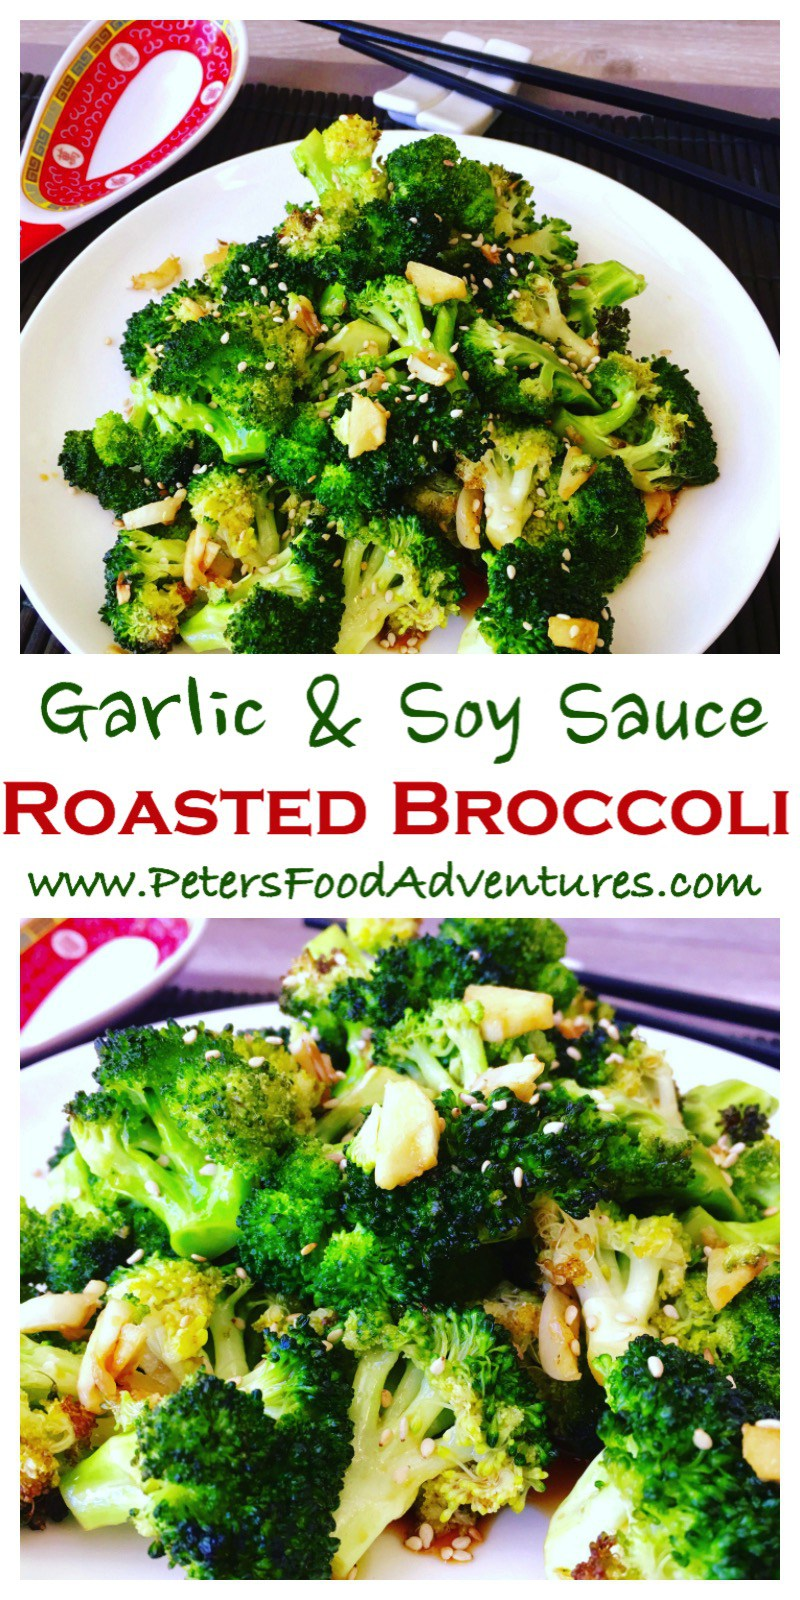 Super easy and delicious. Chinese style, oven roasted, flavourful and packed full of vitamins. The best broccoli side dish you